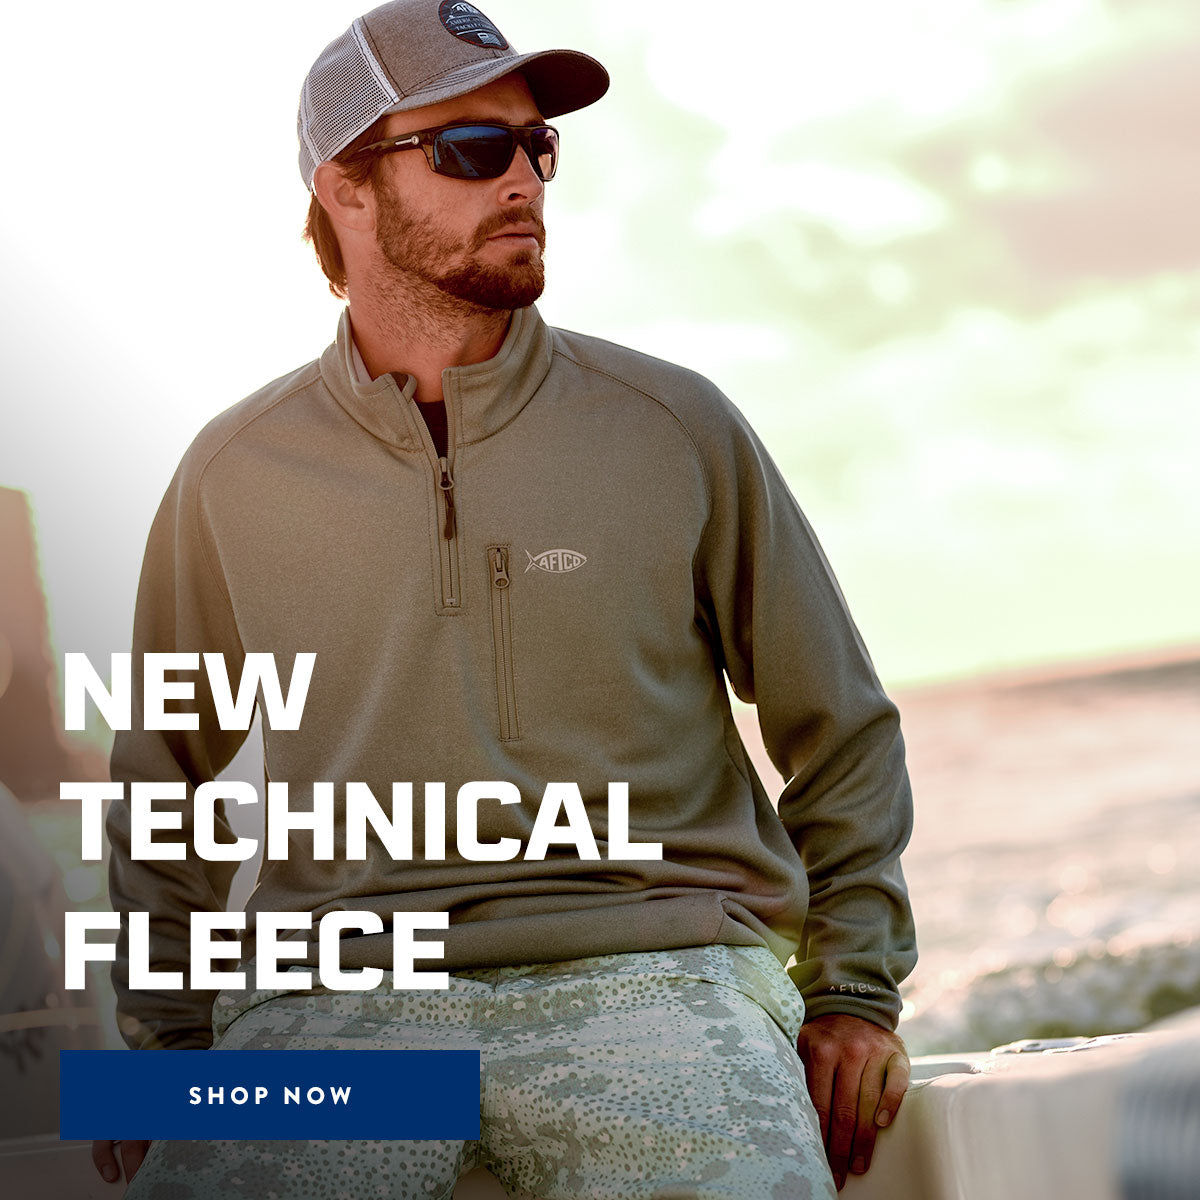 New Technical Fleece - Shop Now